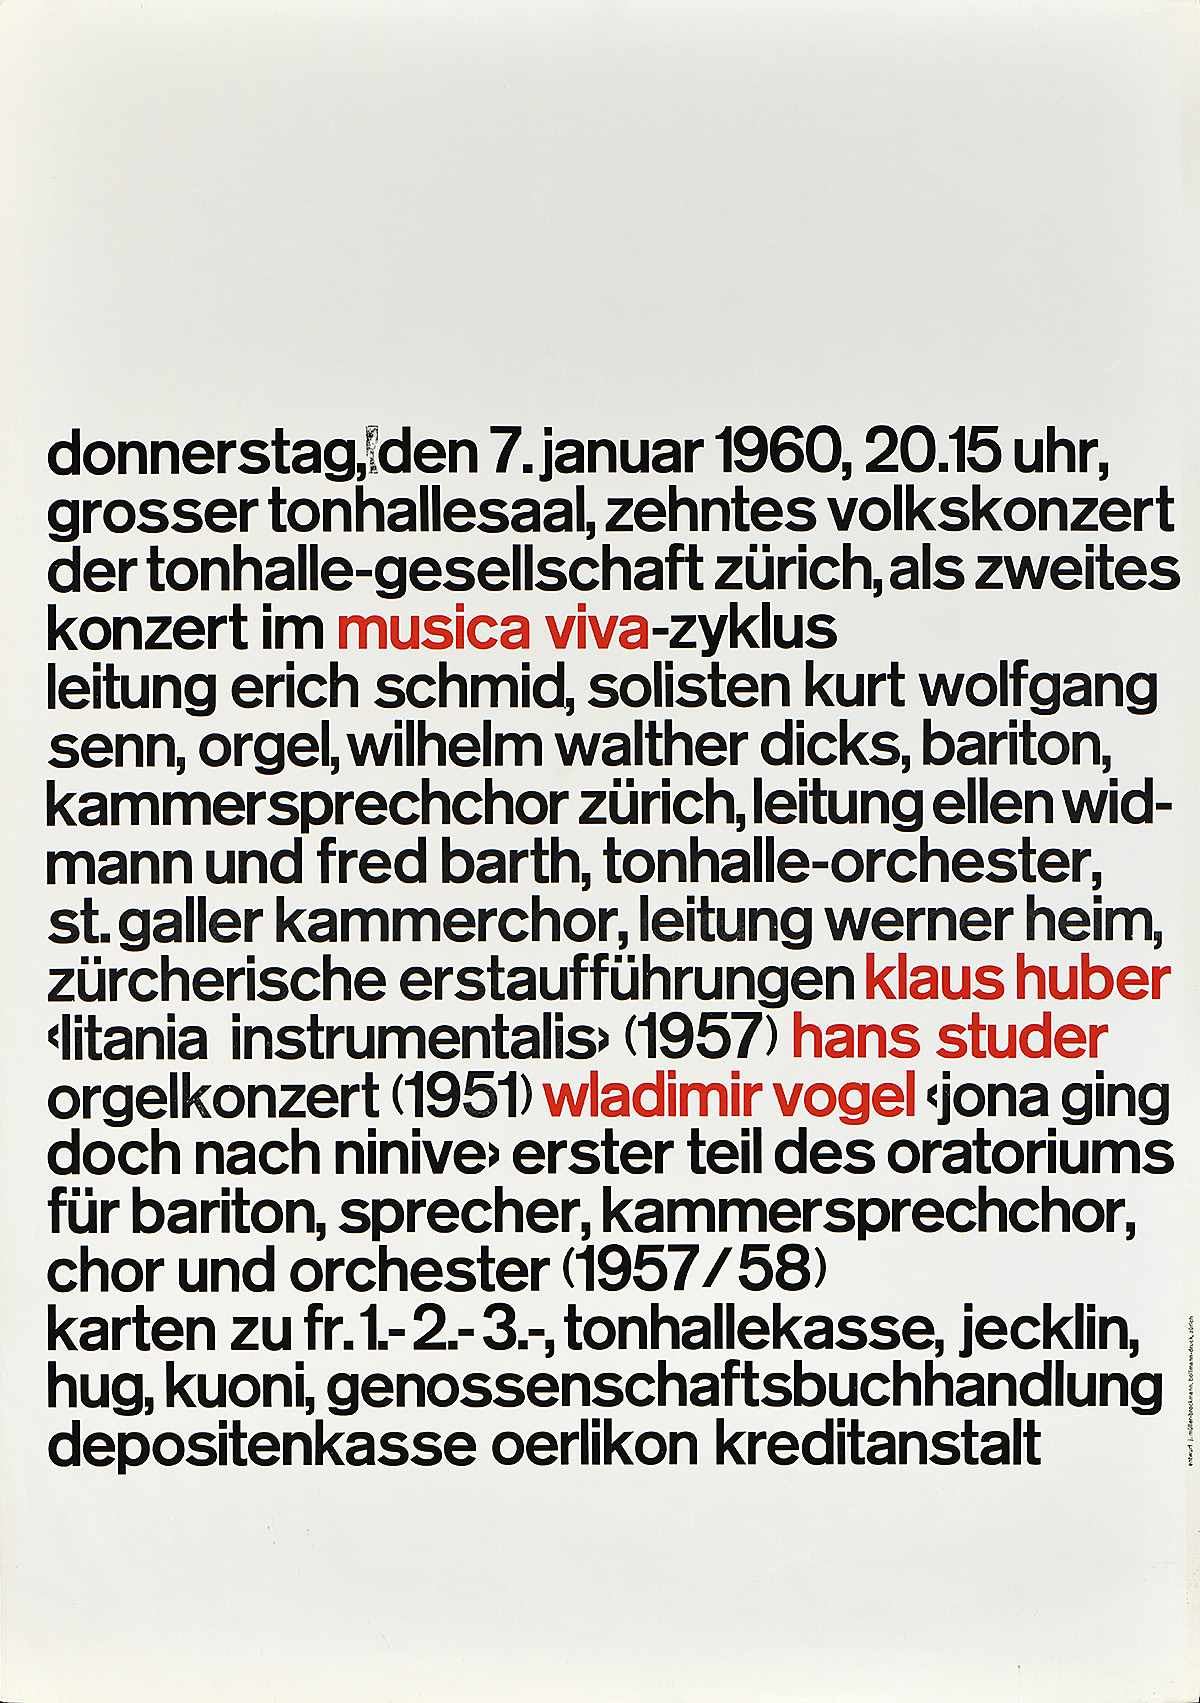 type-based poster for a music festival listing performers in black and red text in a paragraph format